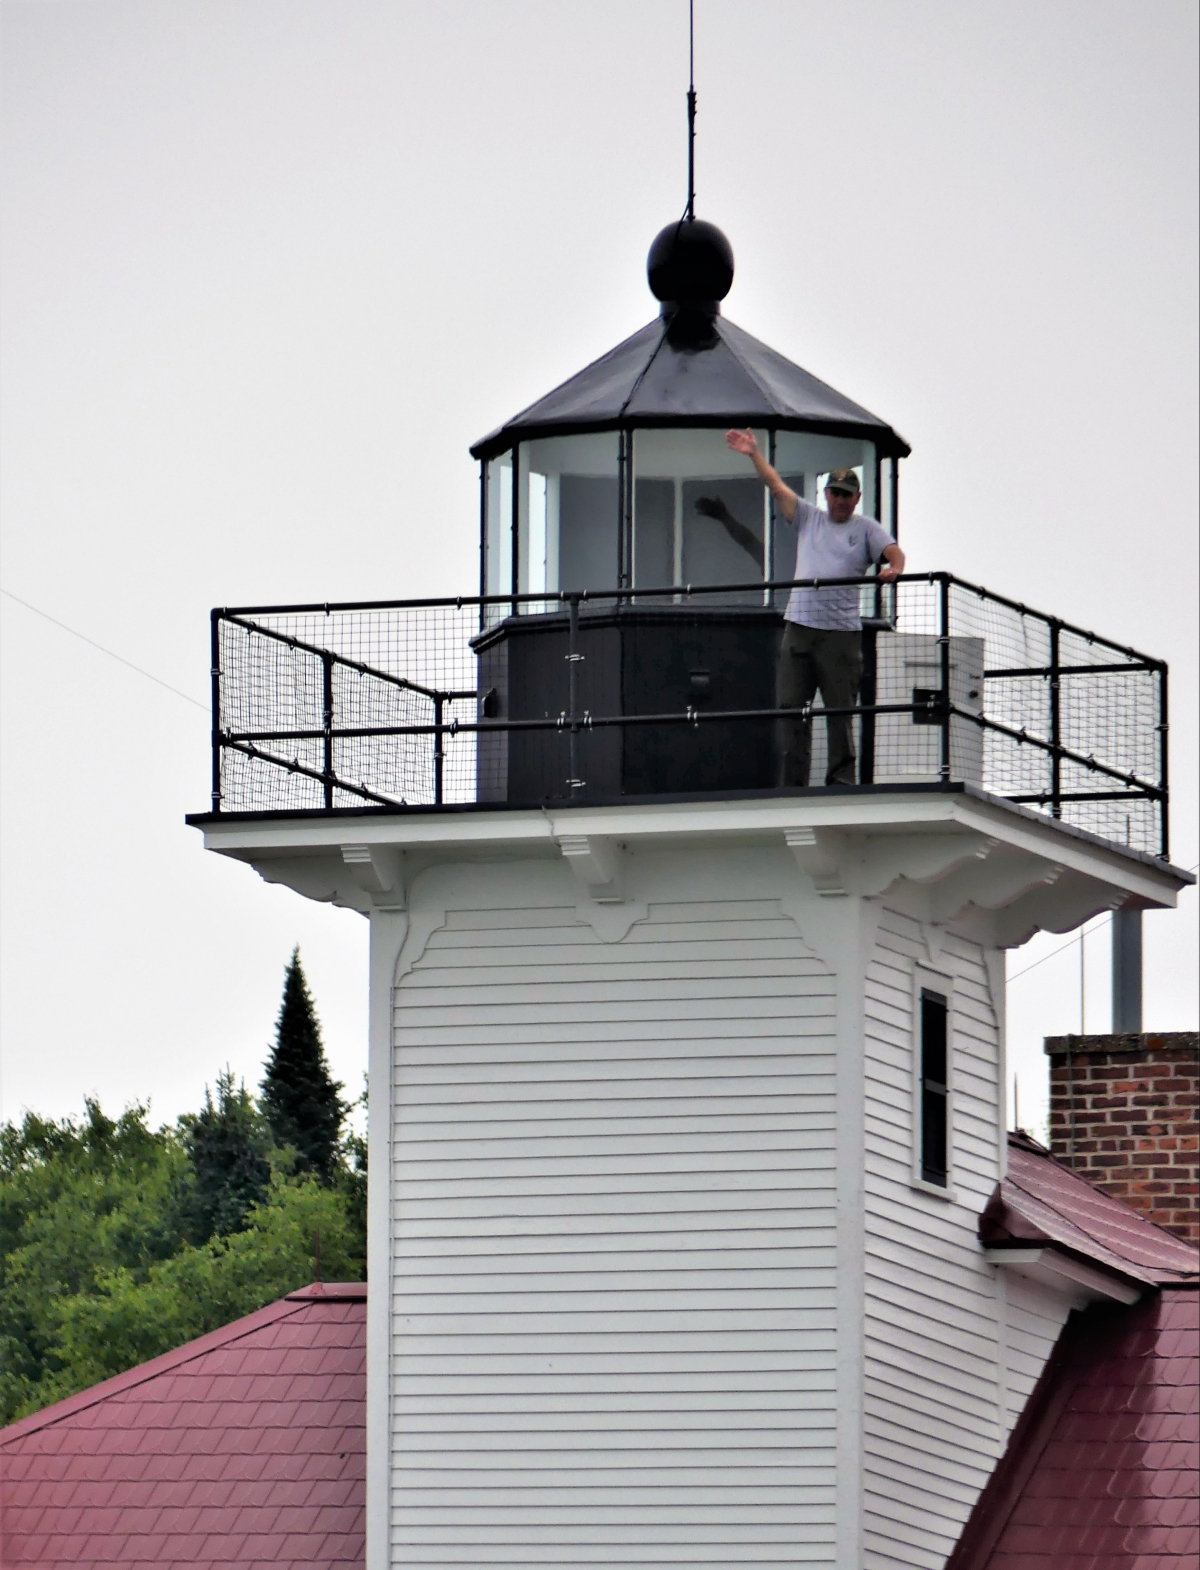 lightkeeper (2)